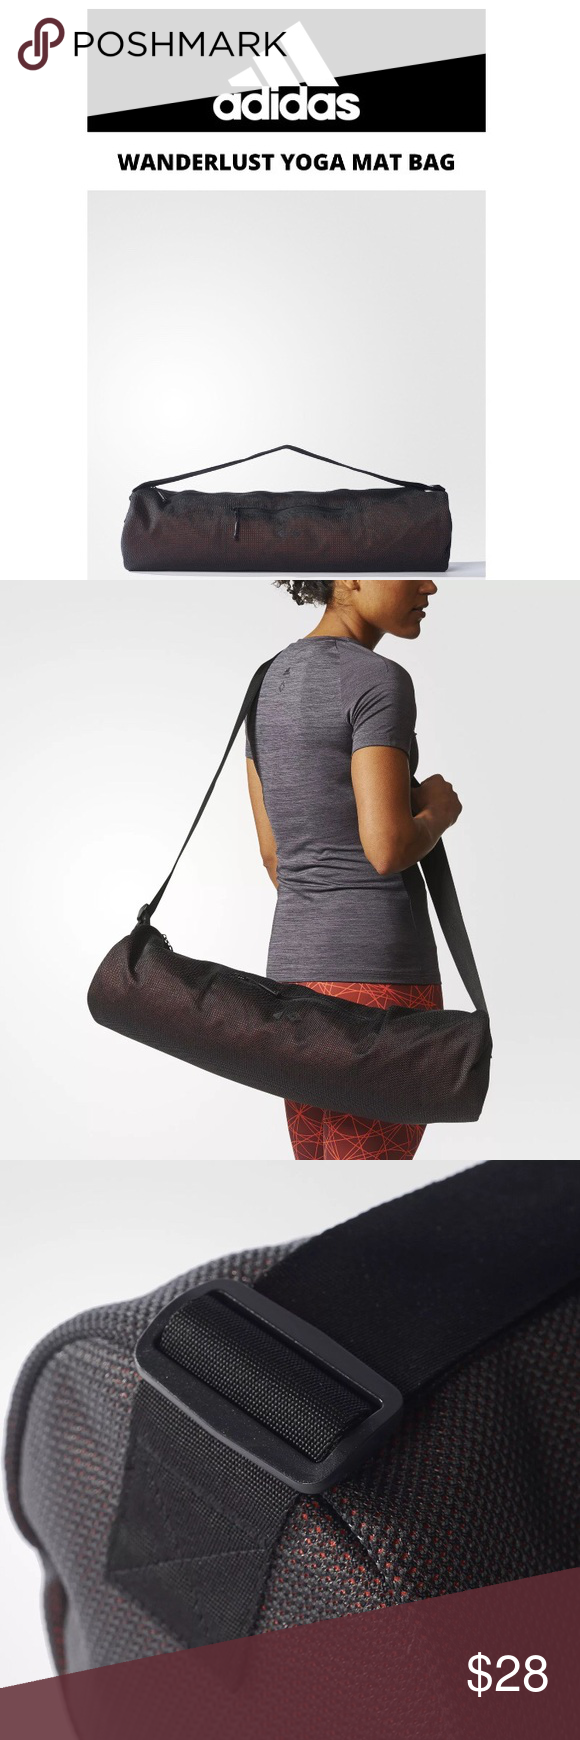 """e47248129503 Adidas Yoga Mat Bag Mesh Wanderlust Crossbody Blk • Adidas Wanderlust •  Athletic Mesh Bag • Mat not included • Will fit Various Yoga Exercise Mats  • 10""""x 5"""" ..."""